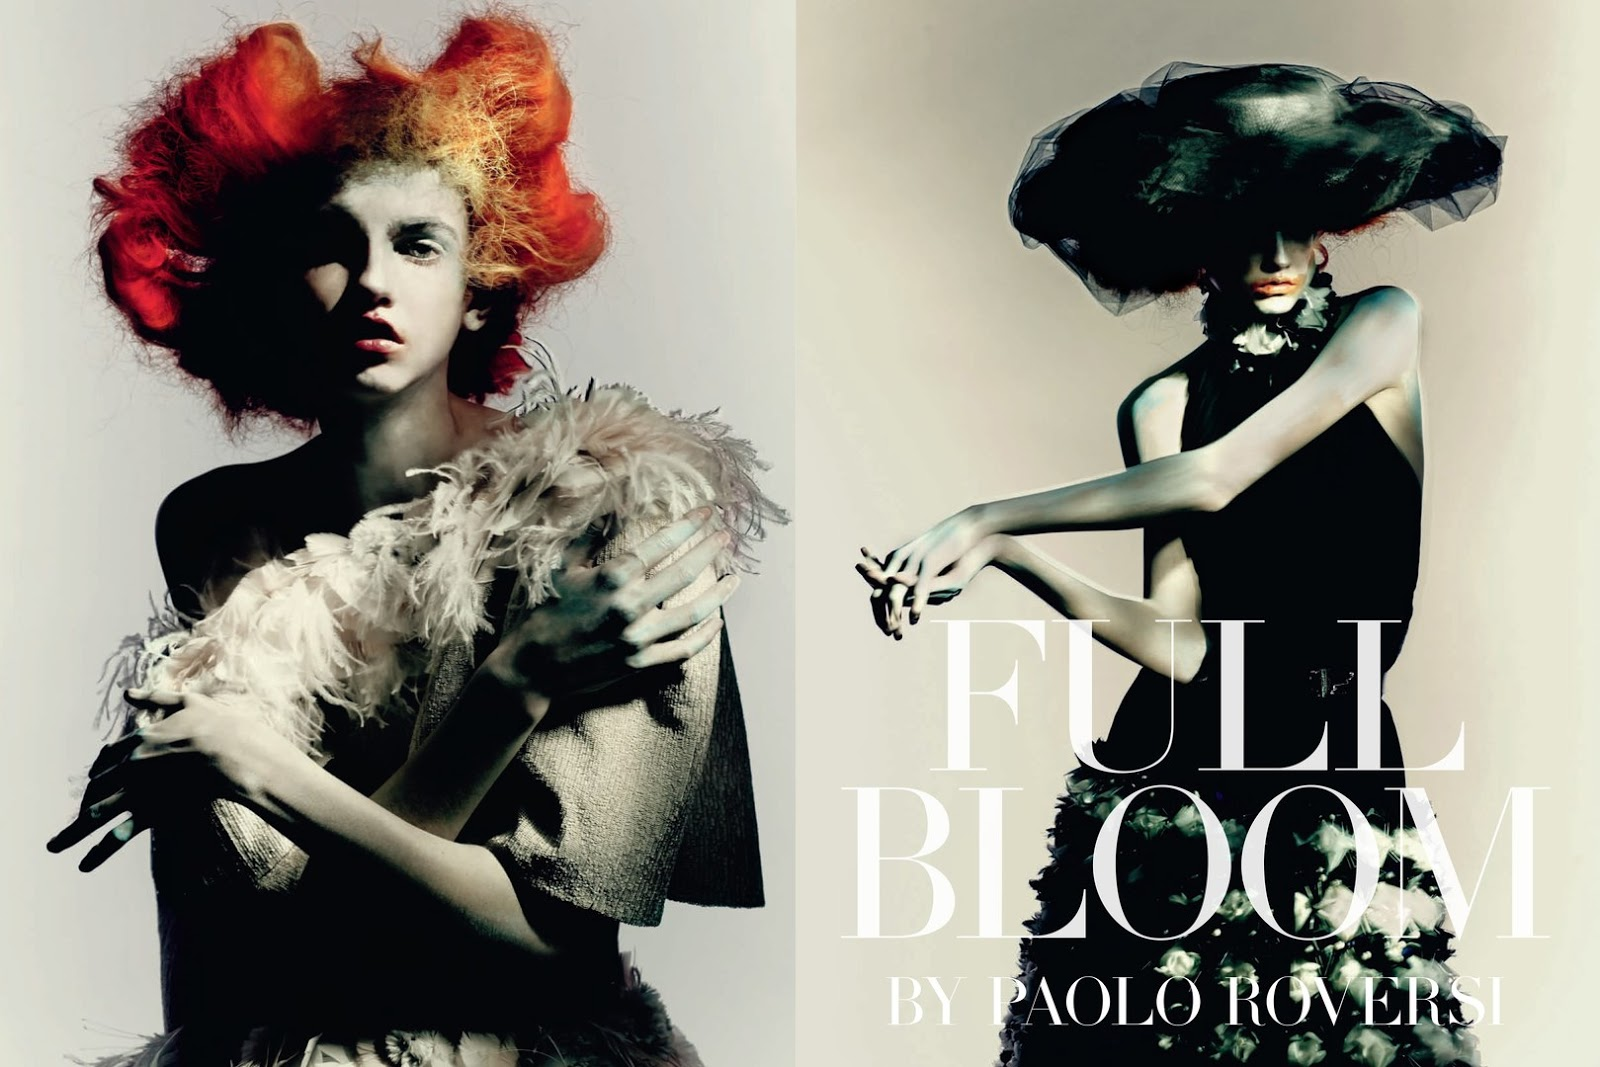 full bloom: molly bair by paolo roversi for vogue italia march 2015